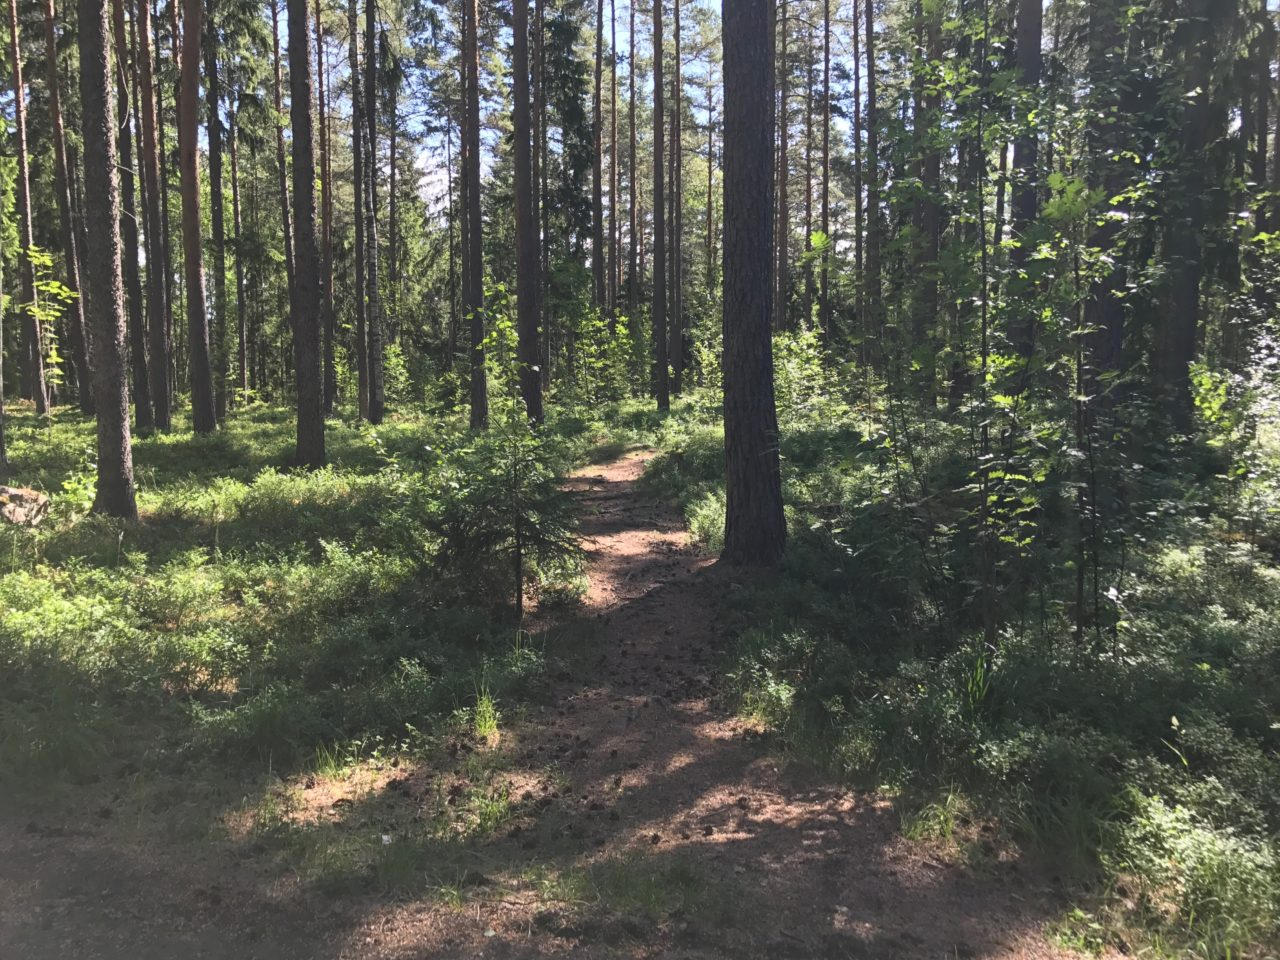 Forest Walkway Path With Bushes And Trees